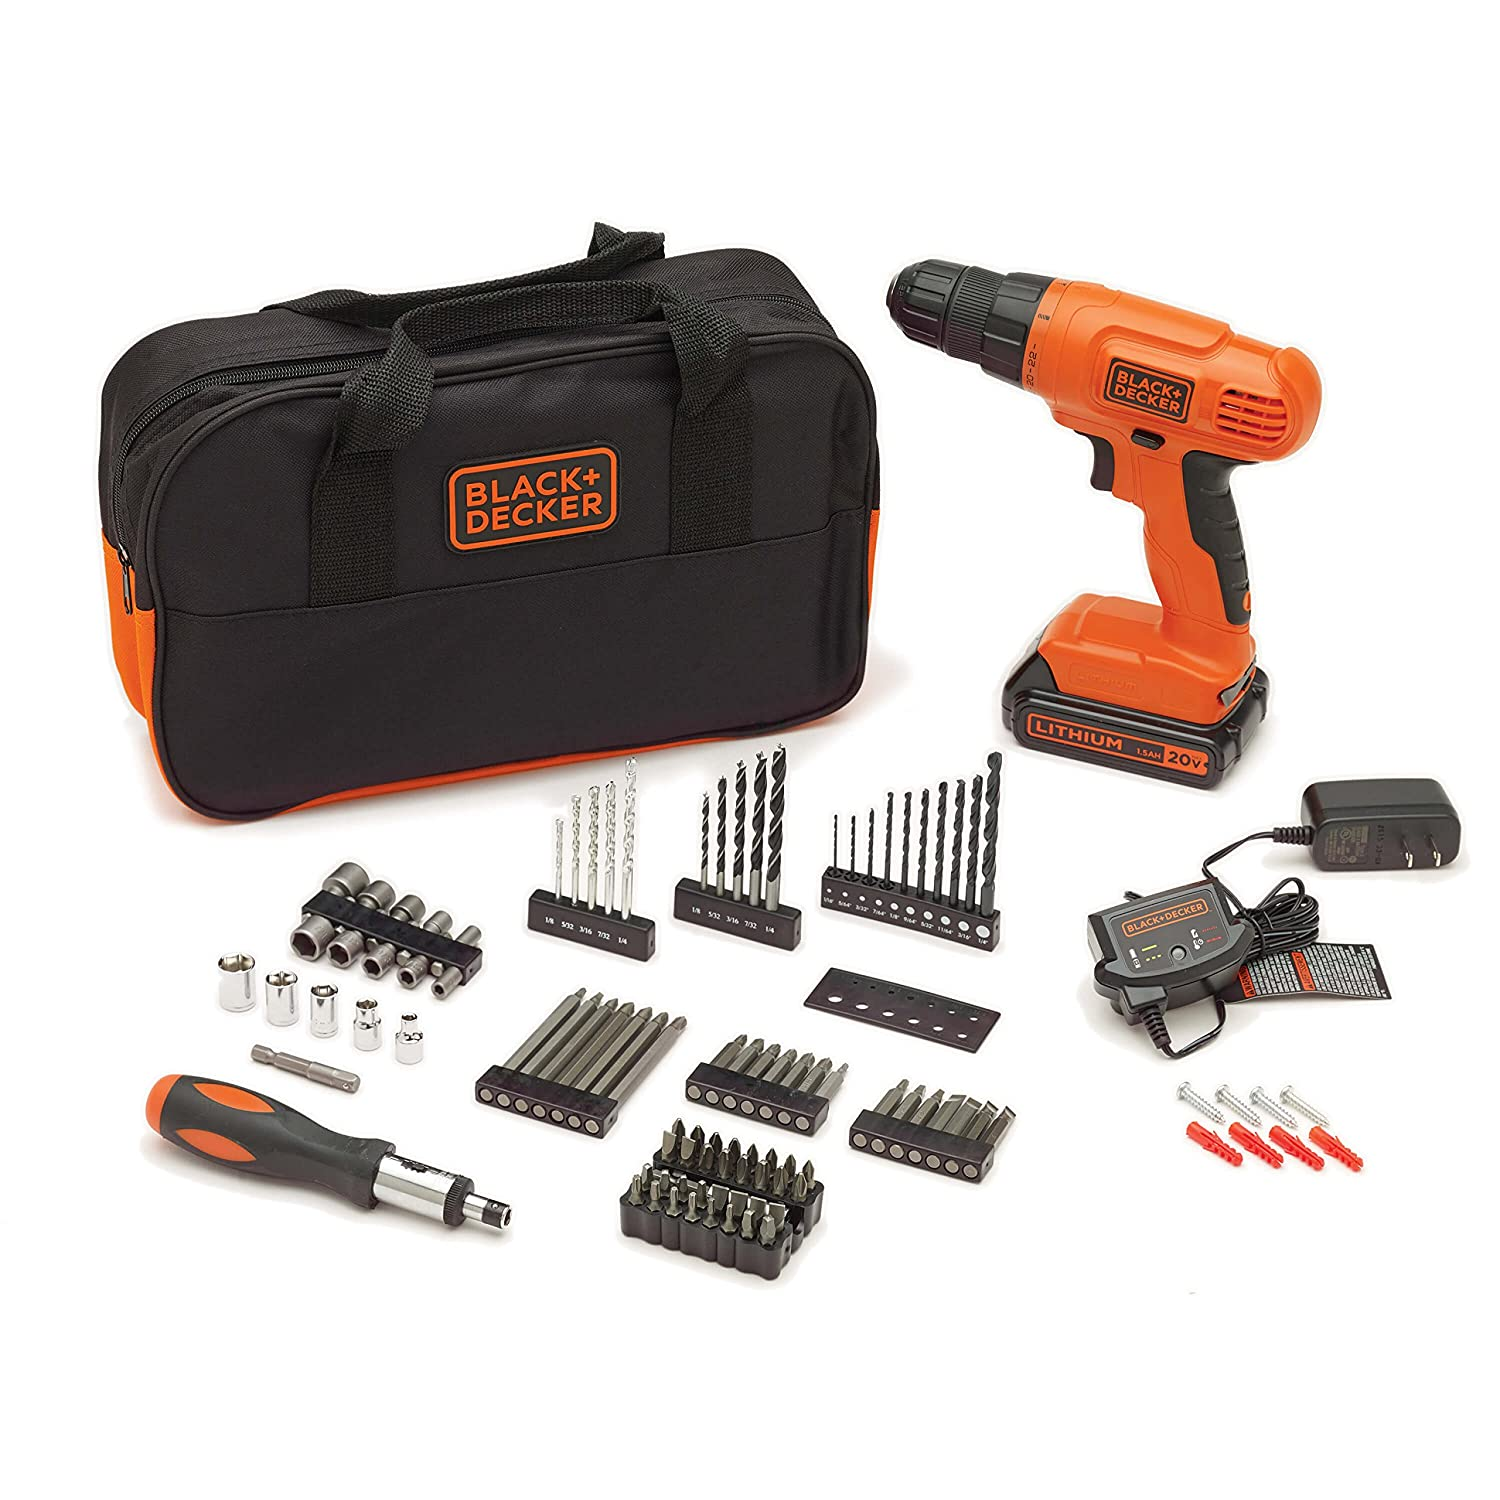 BLACK+DECKER BDC120VA100 20-Volt MAX Lithium-Ion Drill Kit